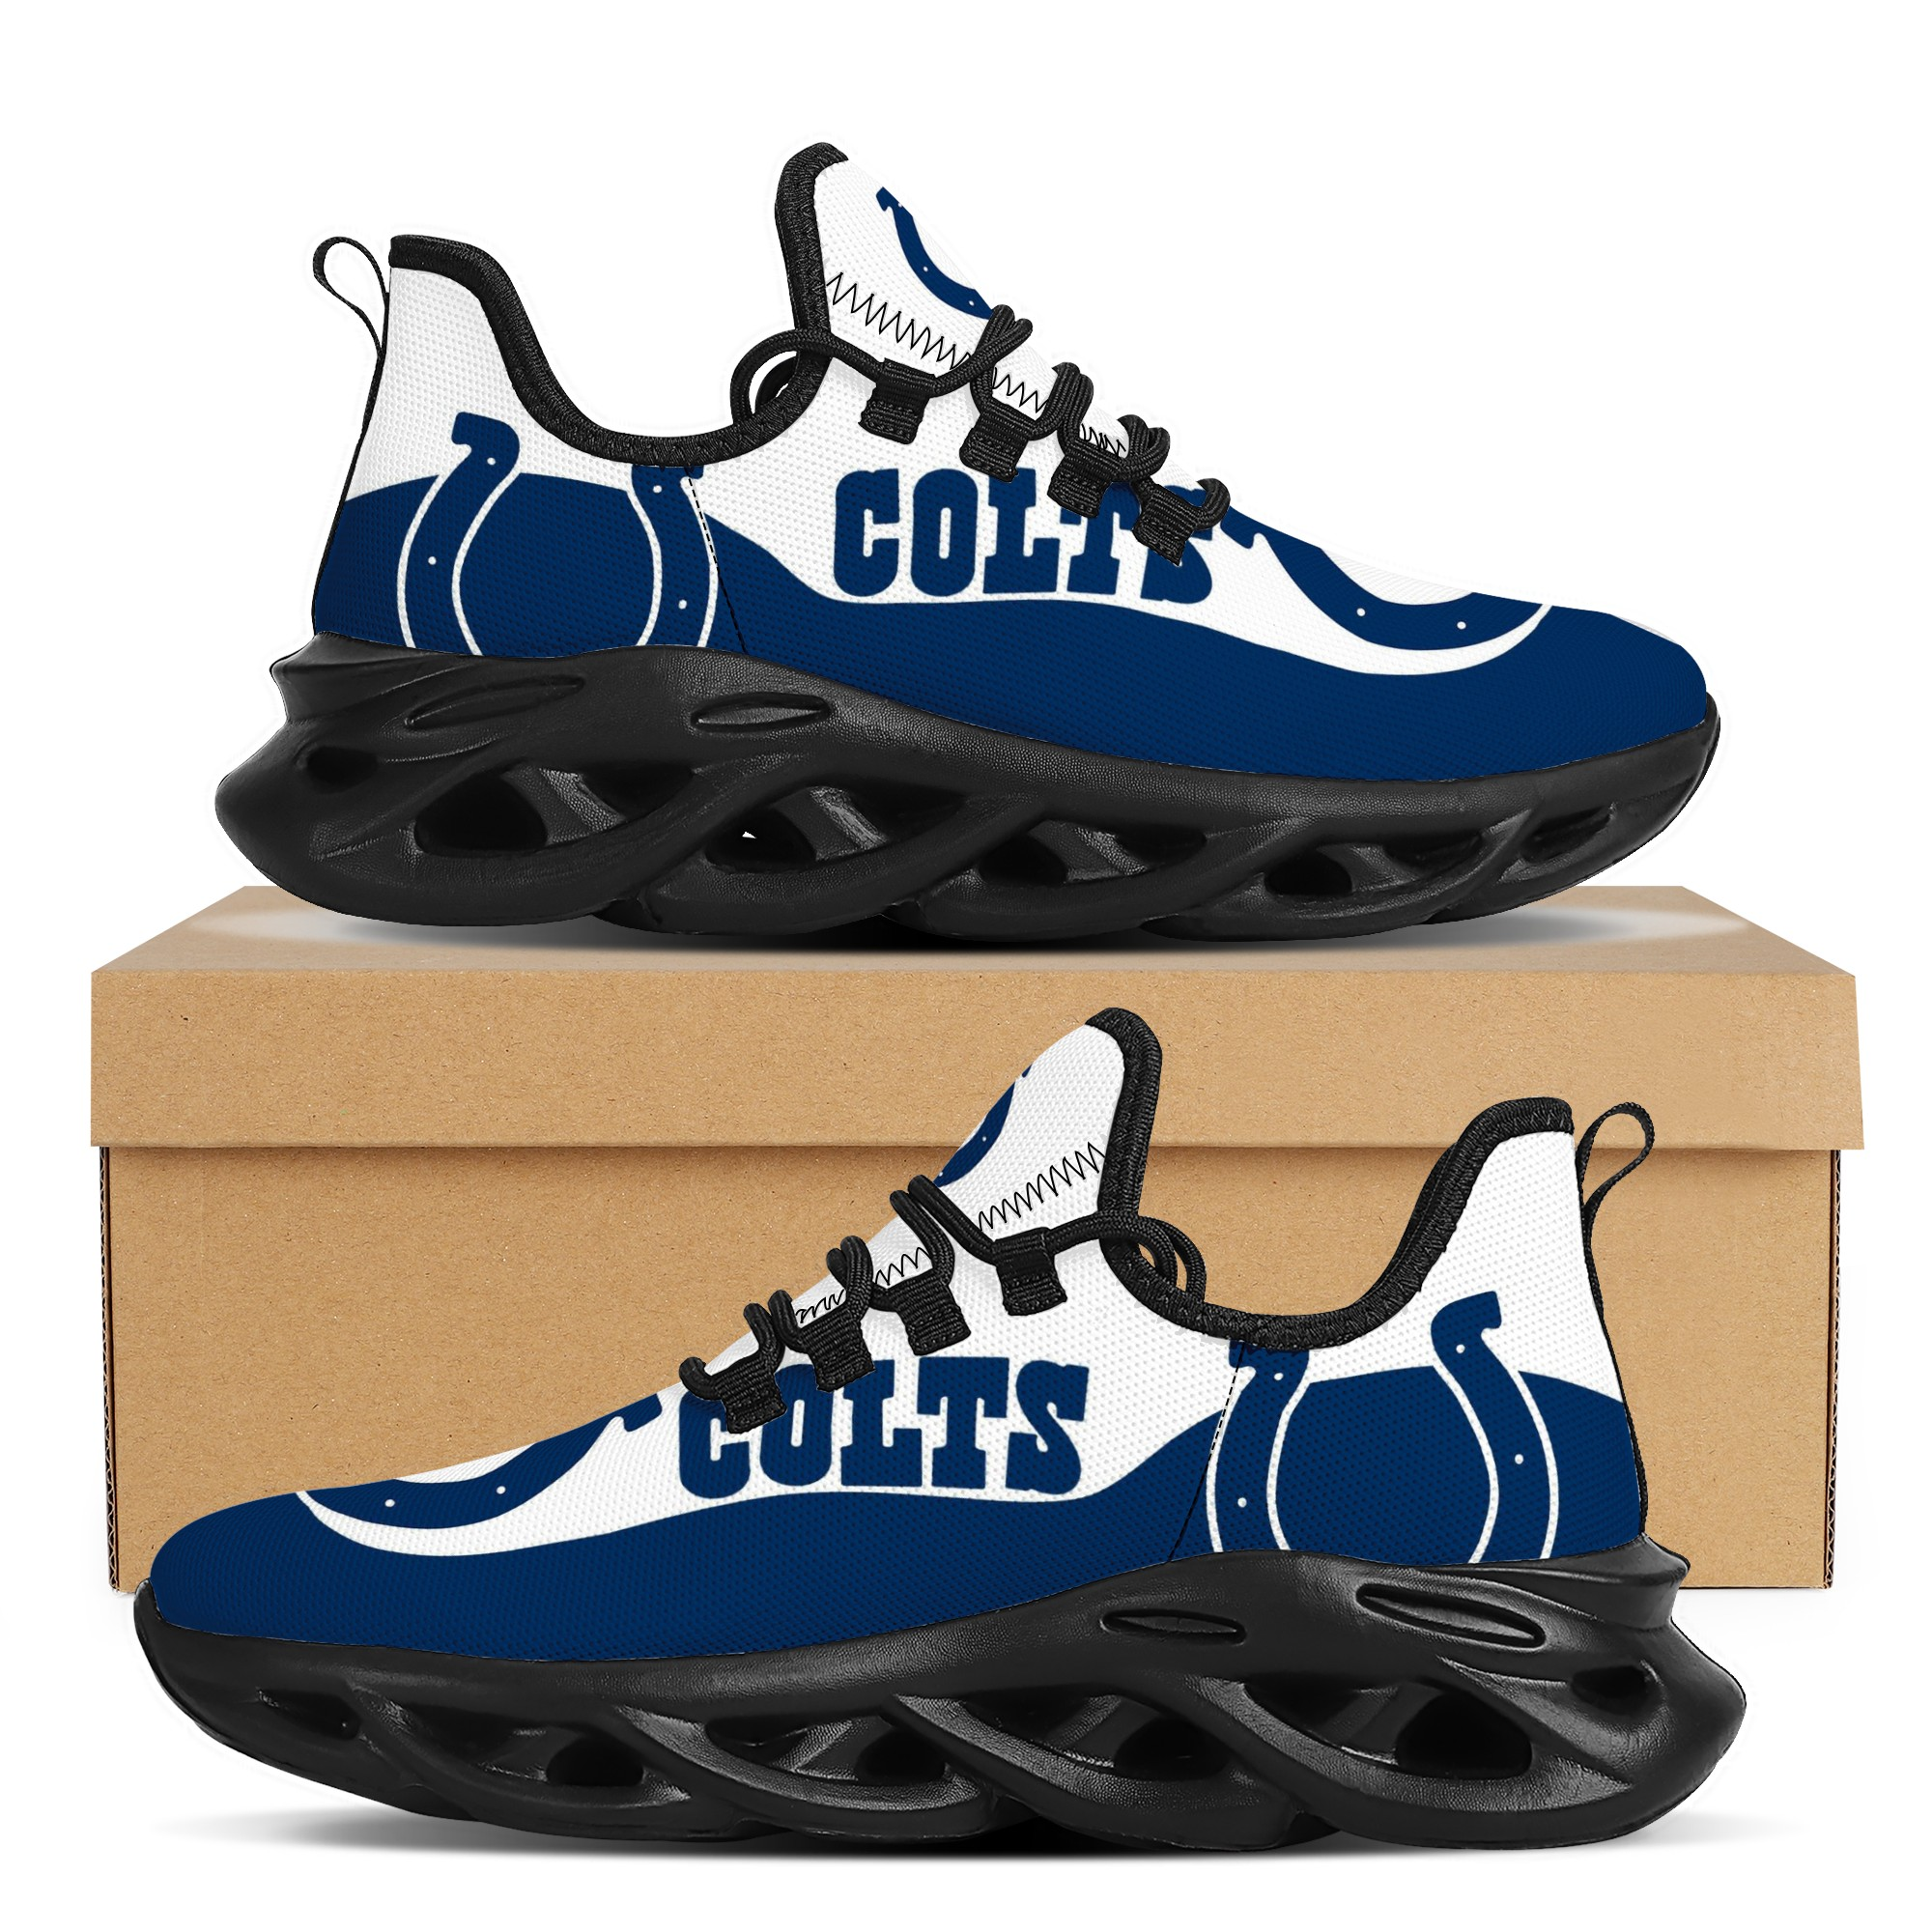 Men's Indianapolis Colts Flex Control Sneakers 001